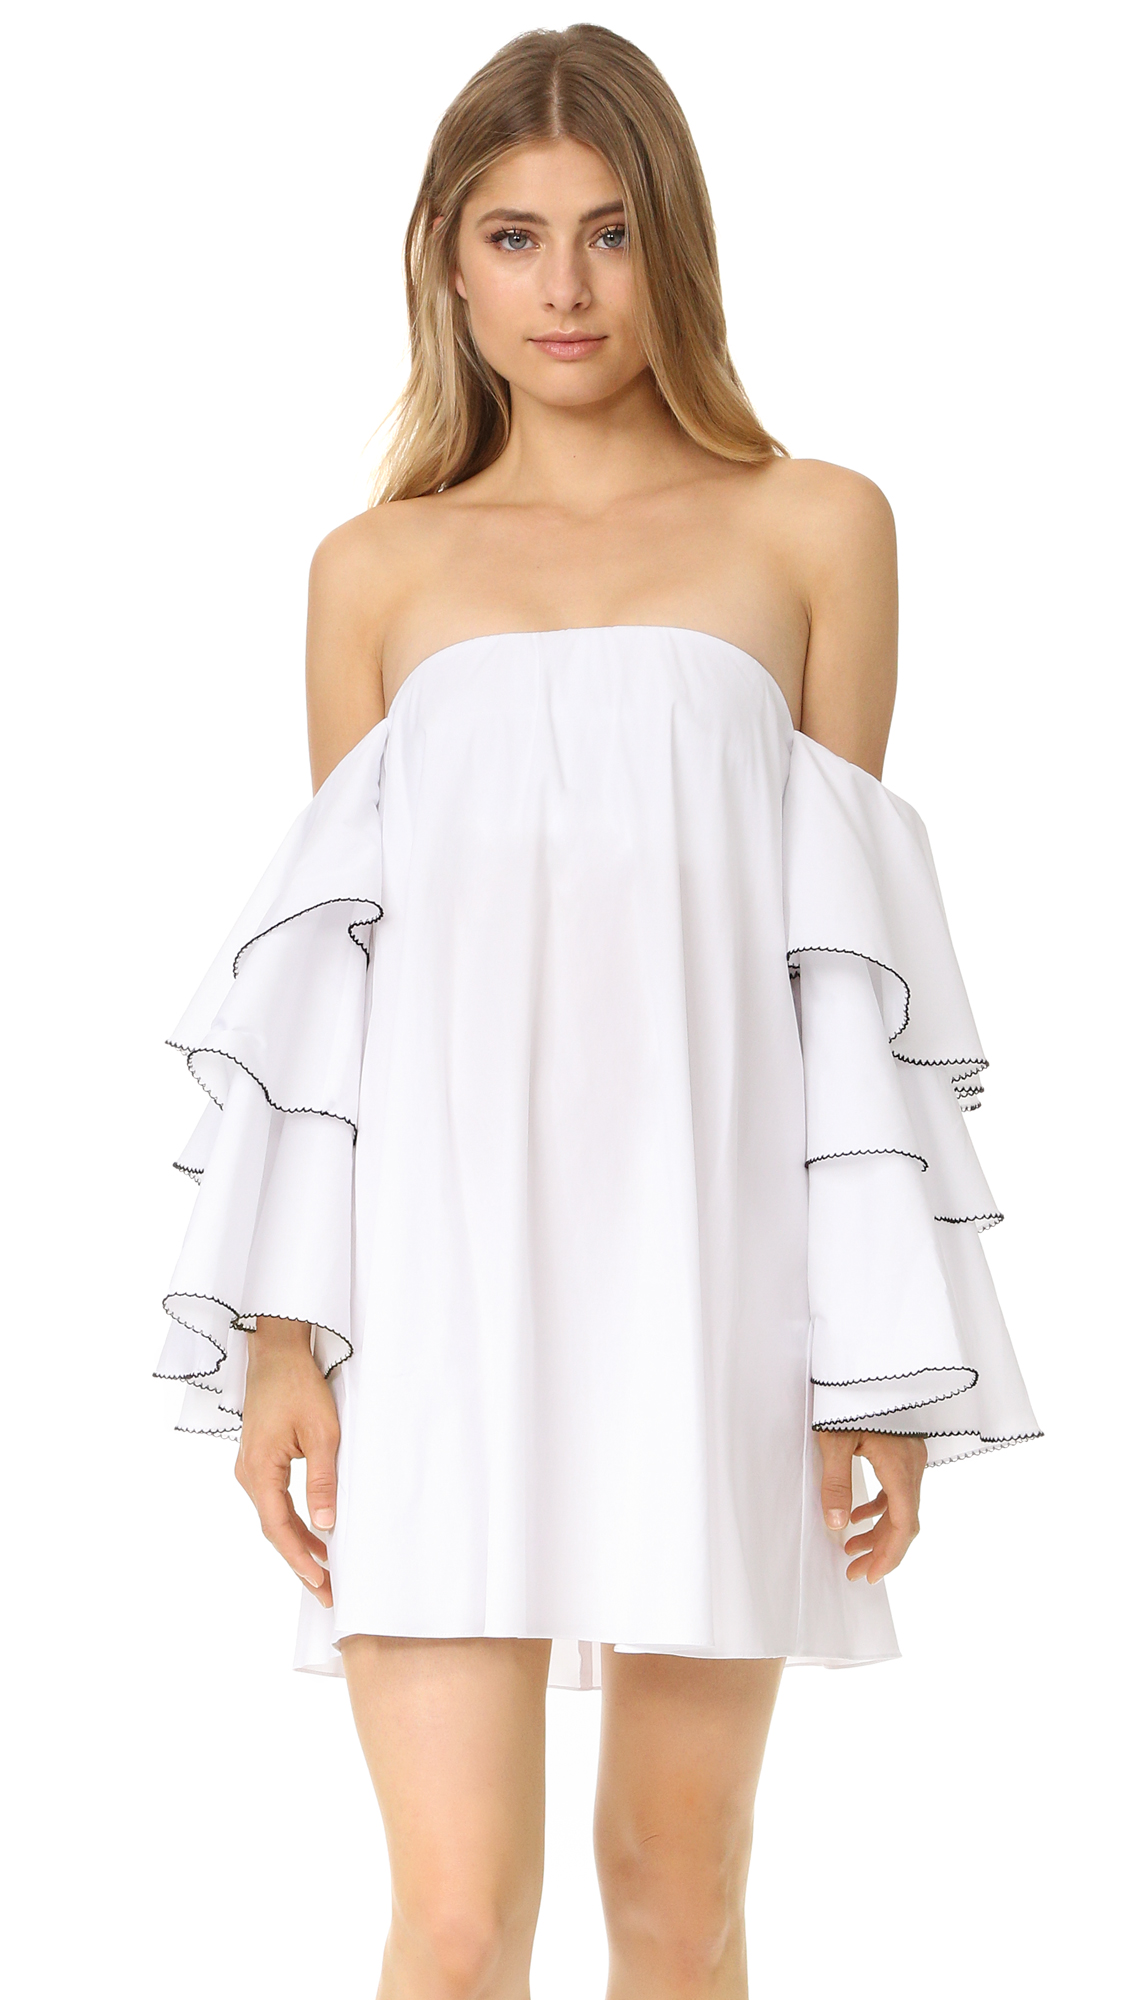 Caroline Constas Carmen Off Shoulder Dress - White/Black